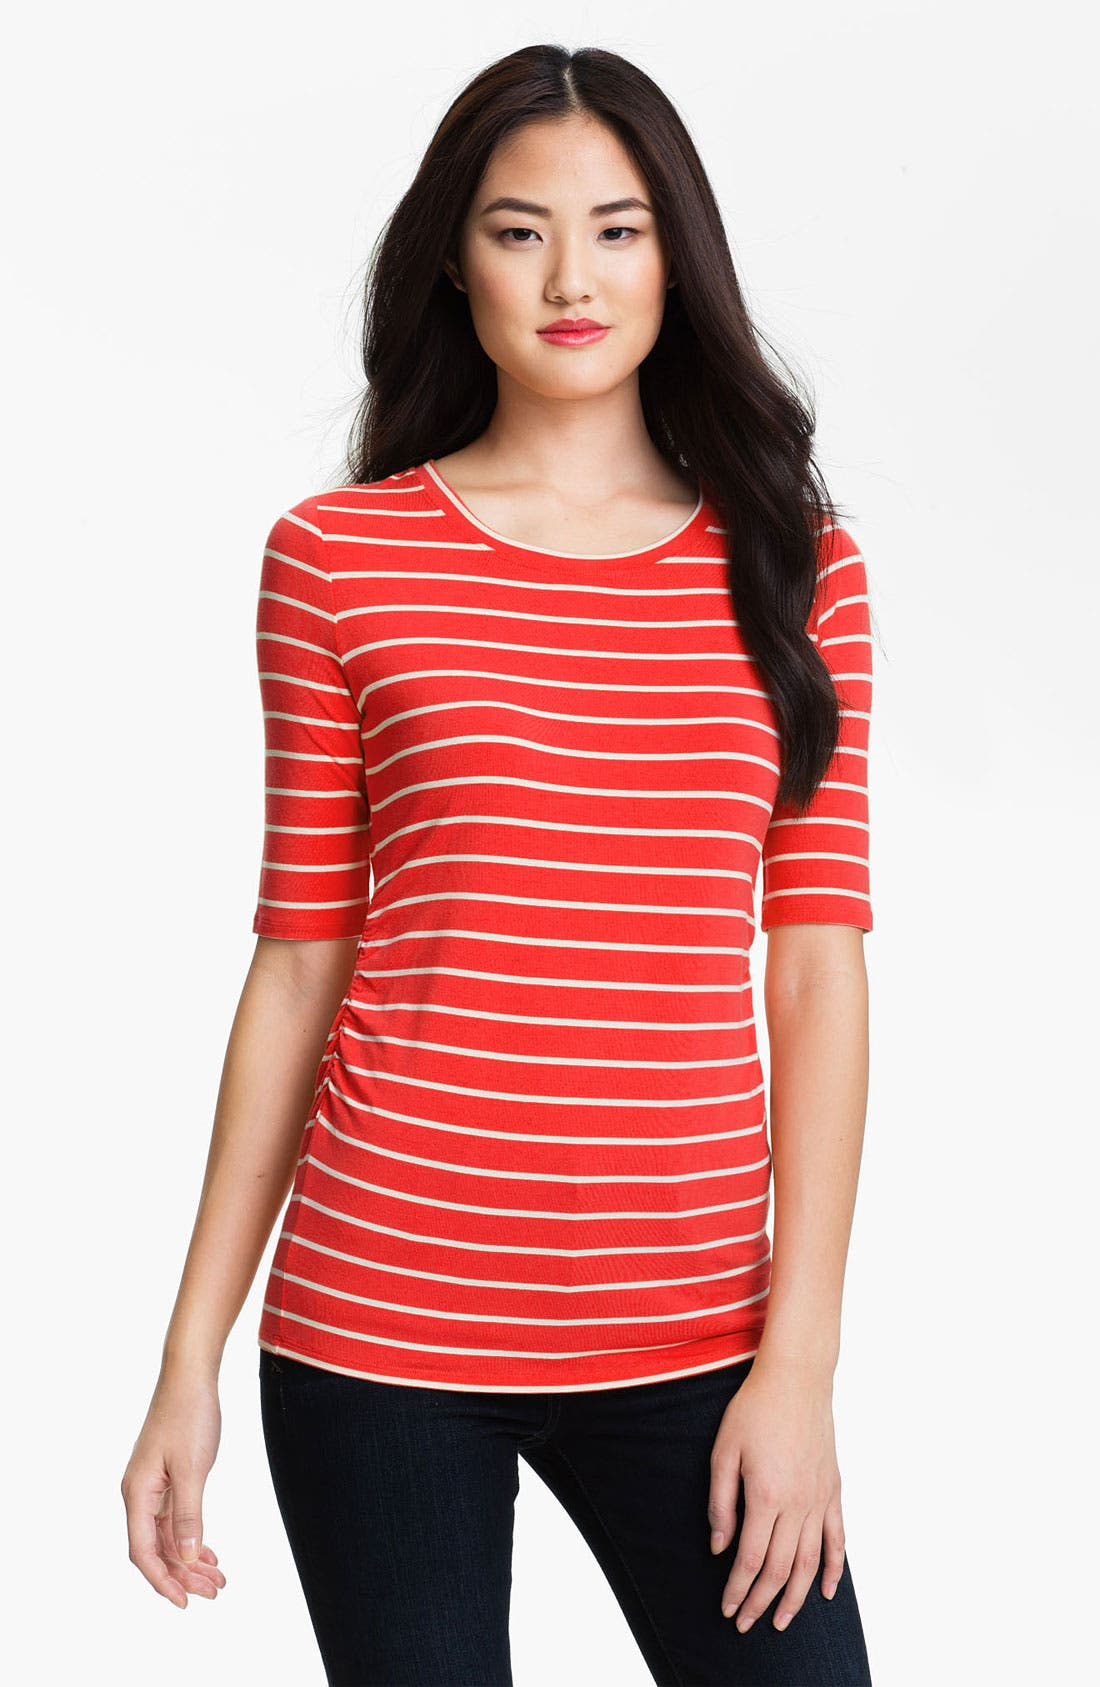 Alternate Image 1 Selected - Vince Camuto Elbow Sleeve Stripe Tee